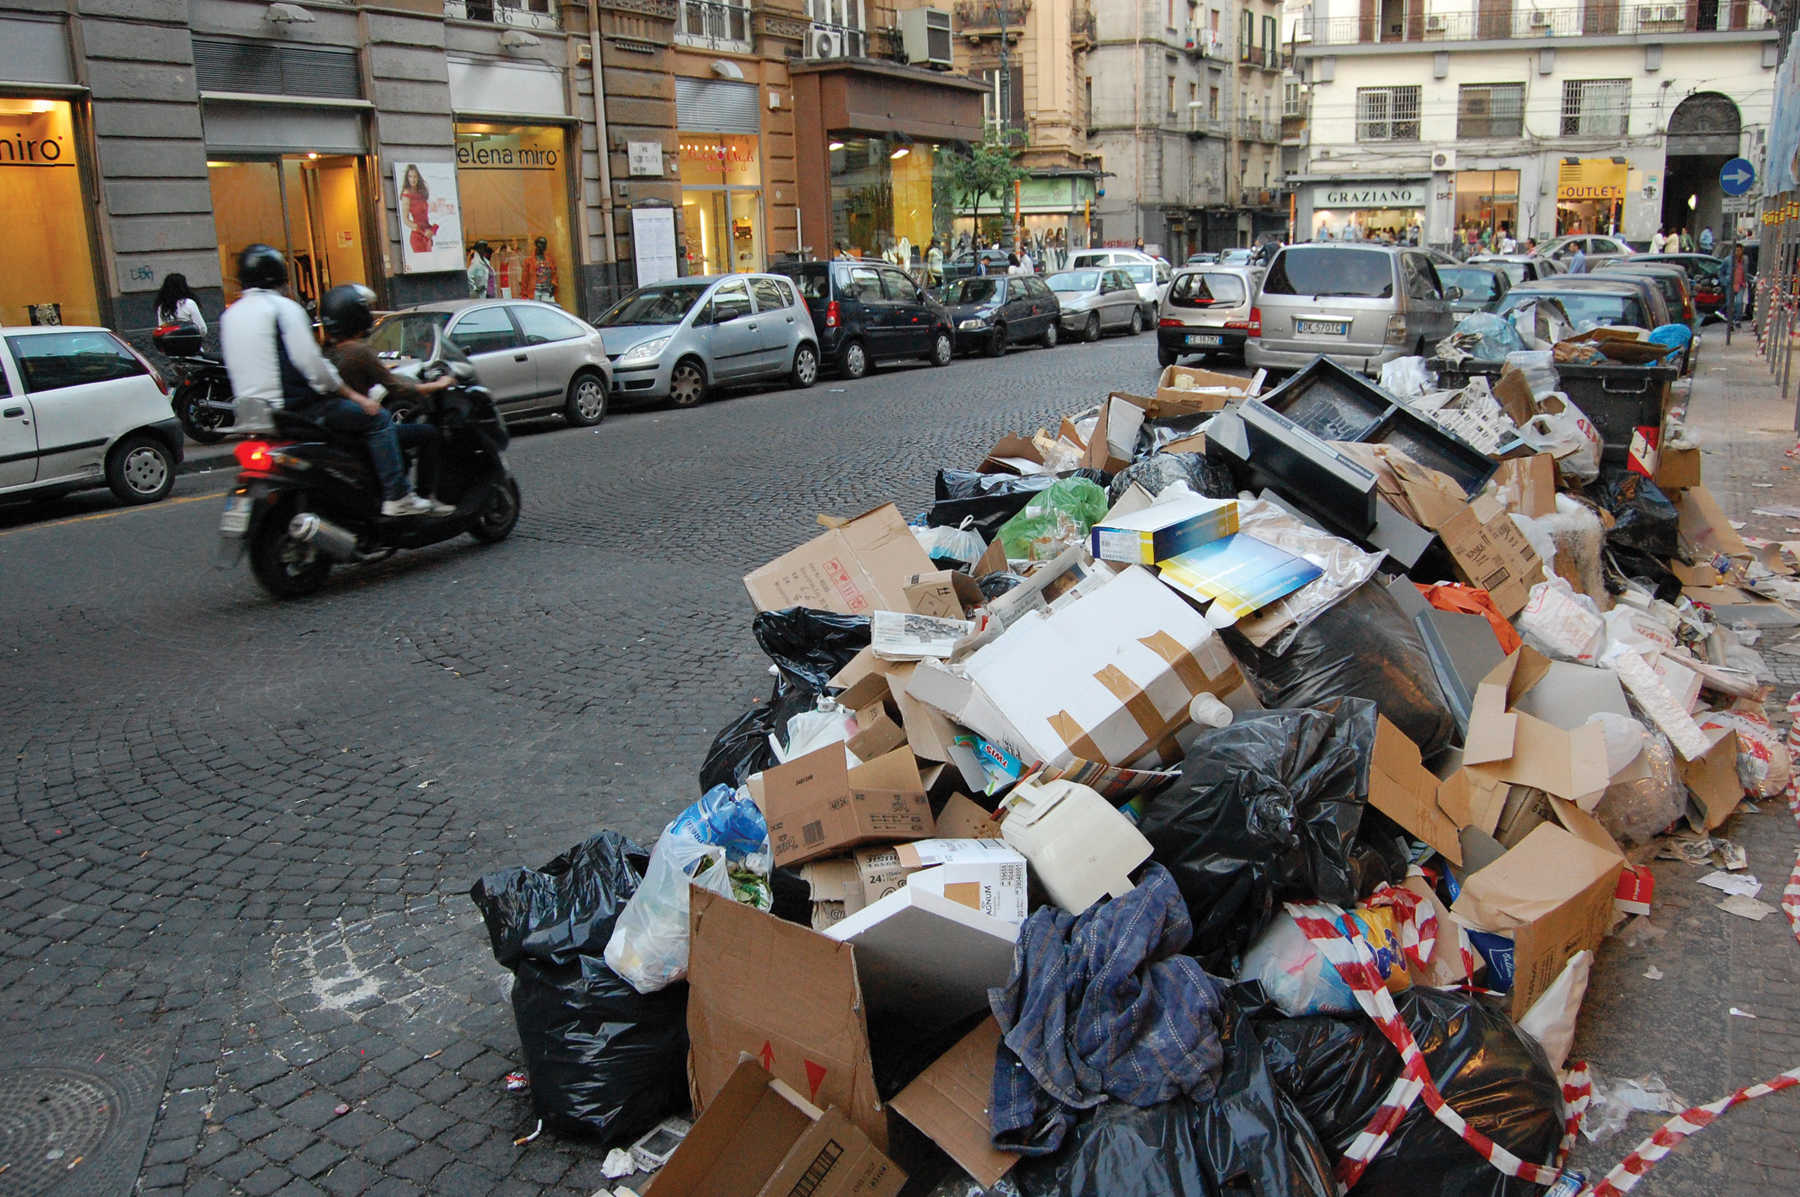 Garbage in Naples, Italy